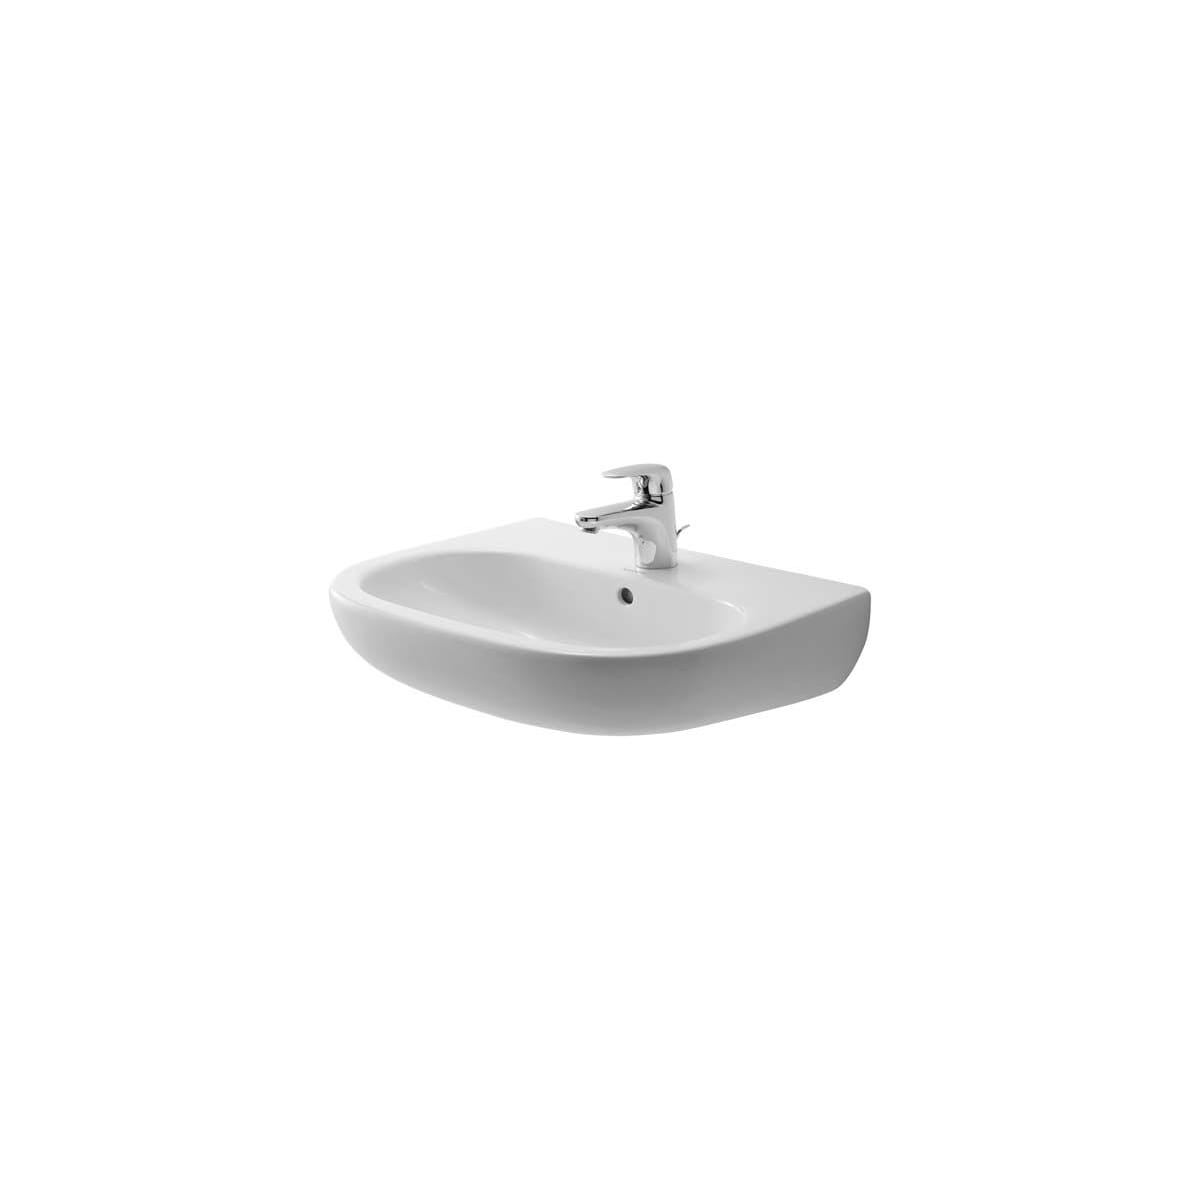 Duravit 23105500002 White Glazed Underside D Code 21 5 8 Specialty Ceramic Wall Mounted Bathroom Sink With Overflow And 1 Faucet Hole Faucet Com